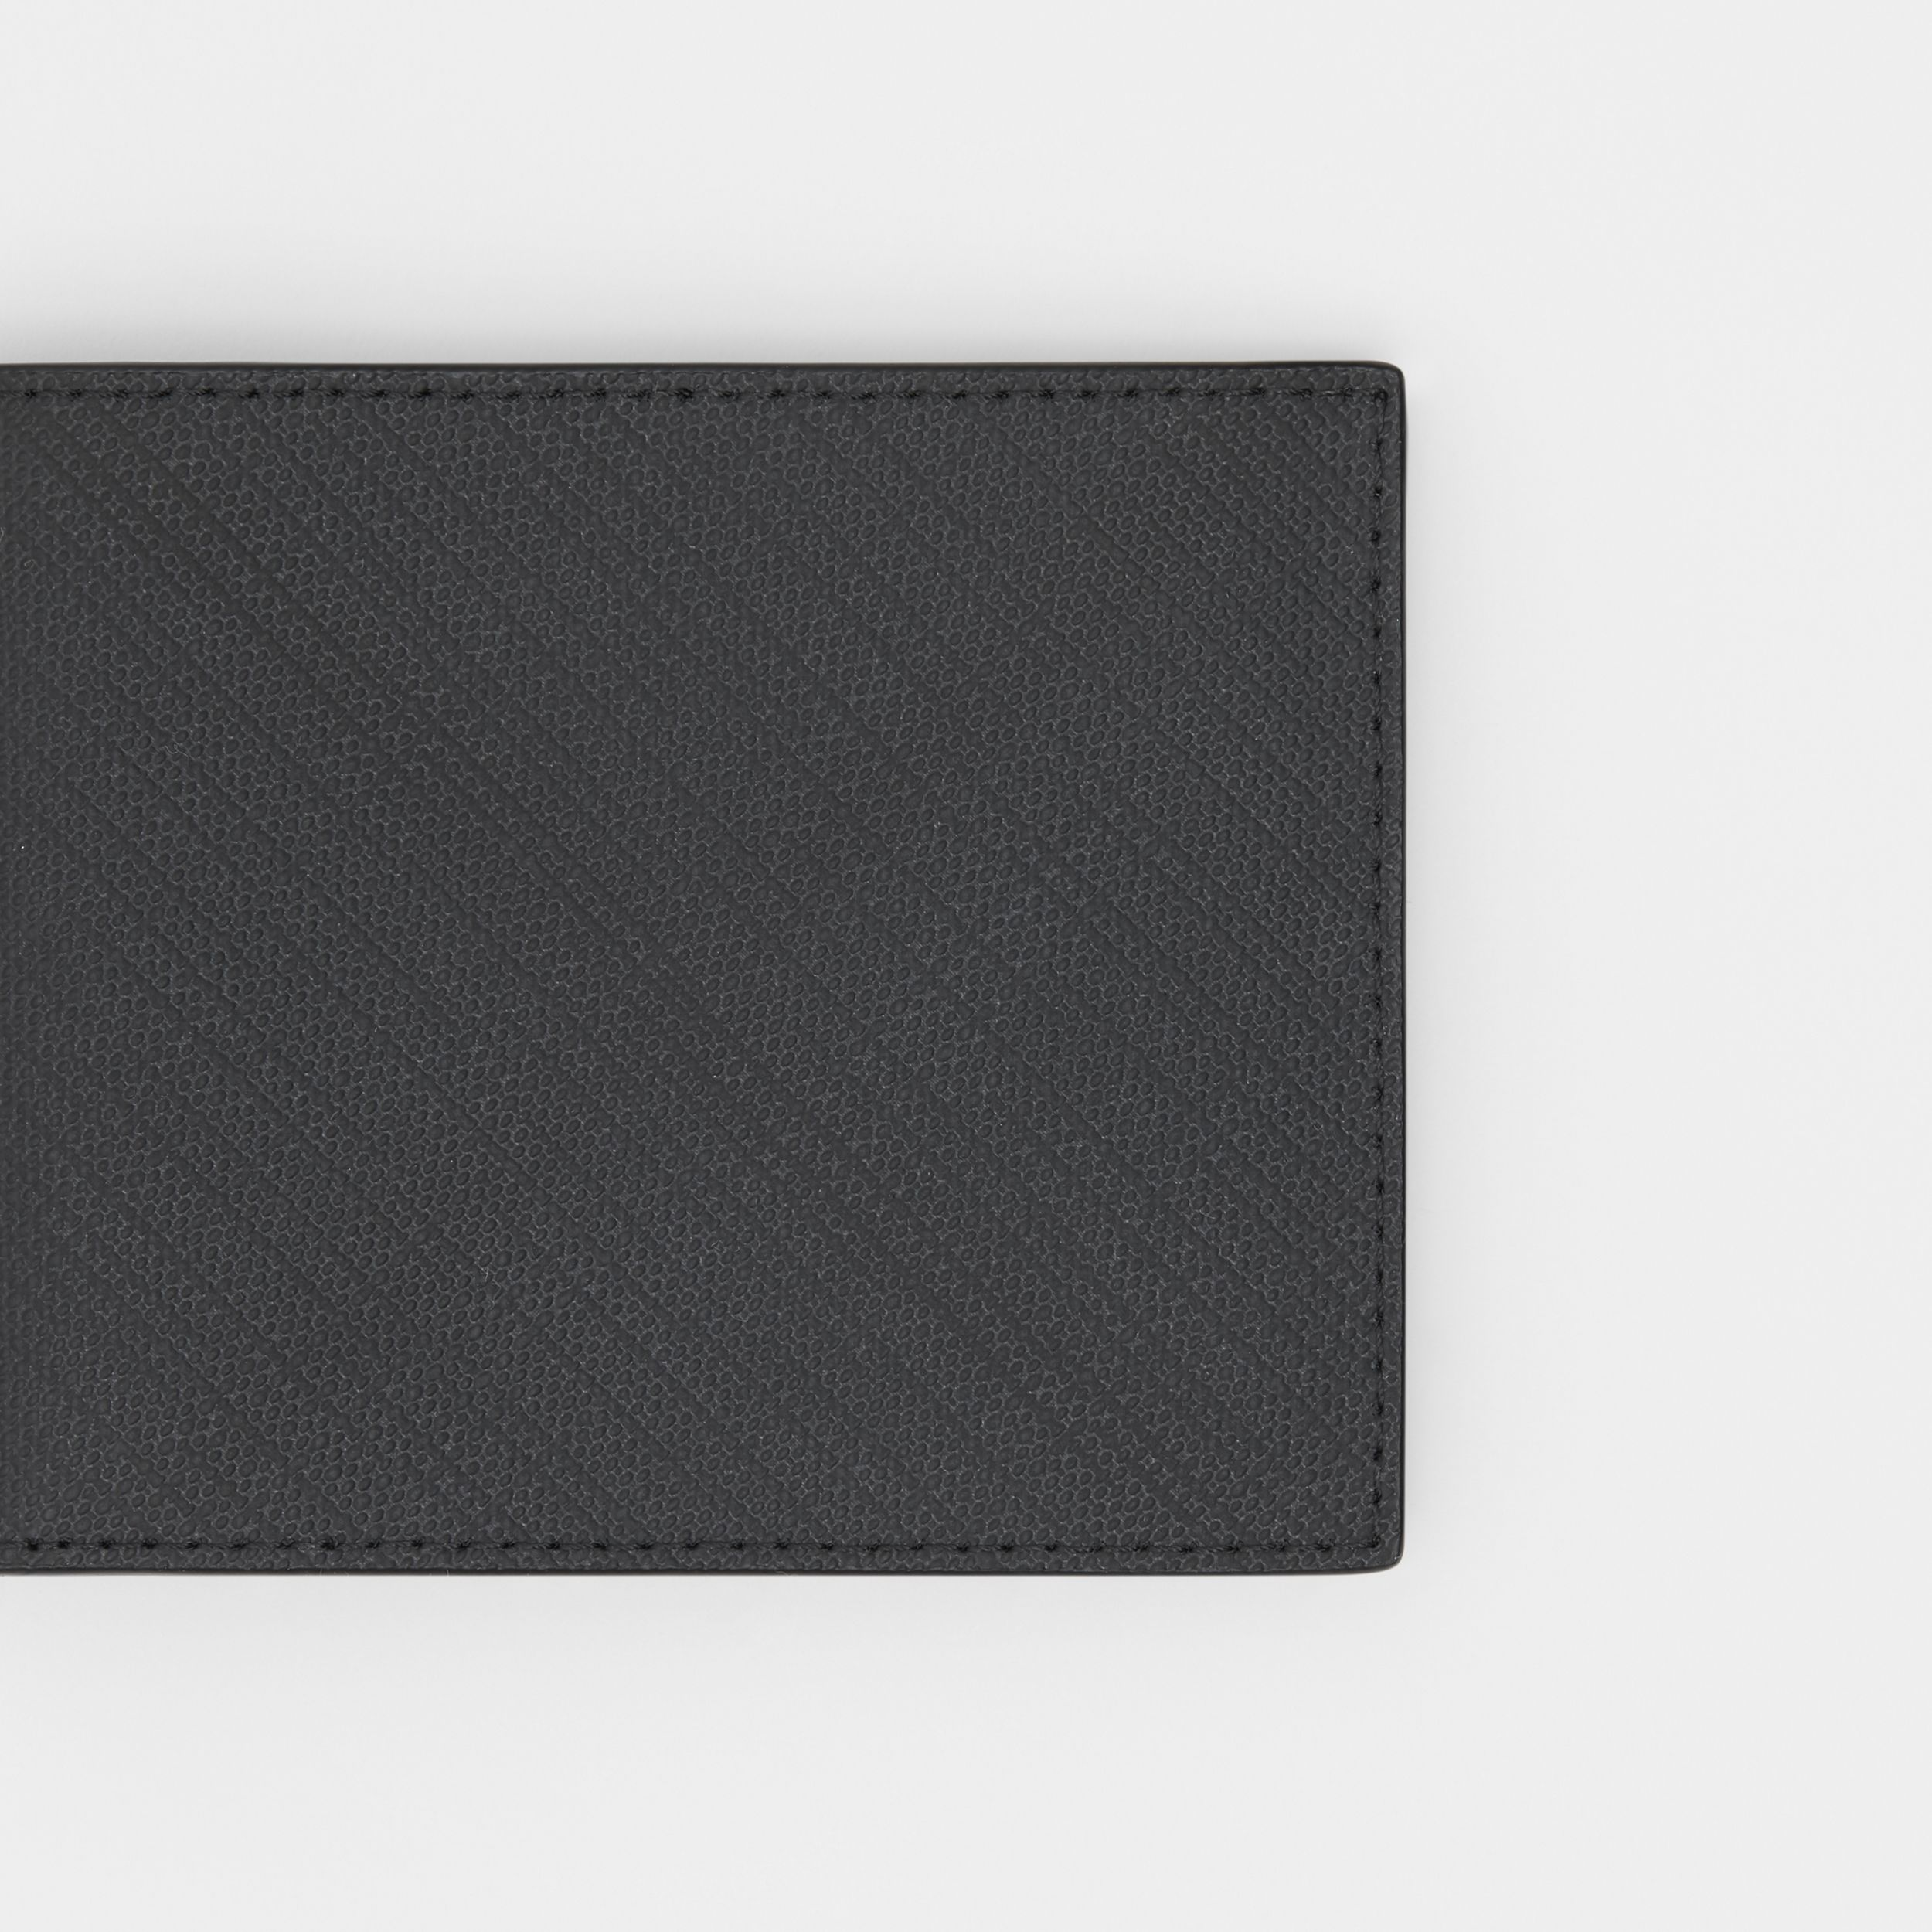 London Check and Leather Bifold Wallet in Dark Charcoal - Men | Burberry - 2